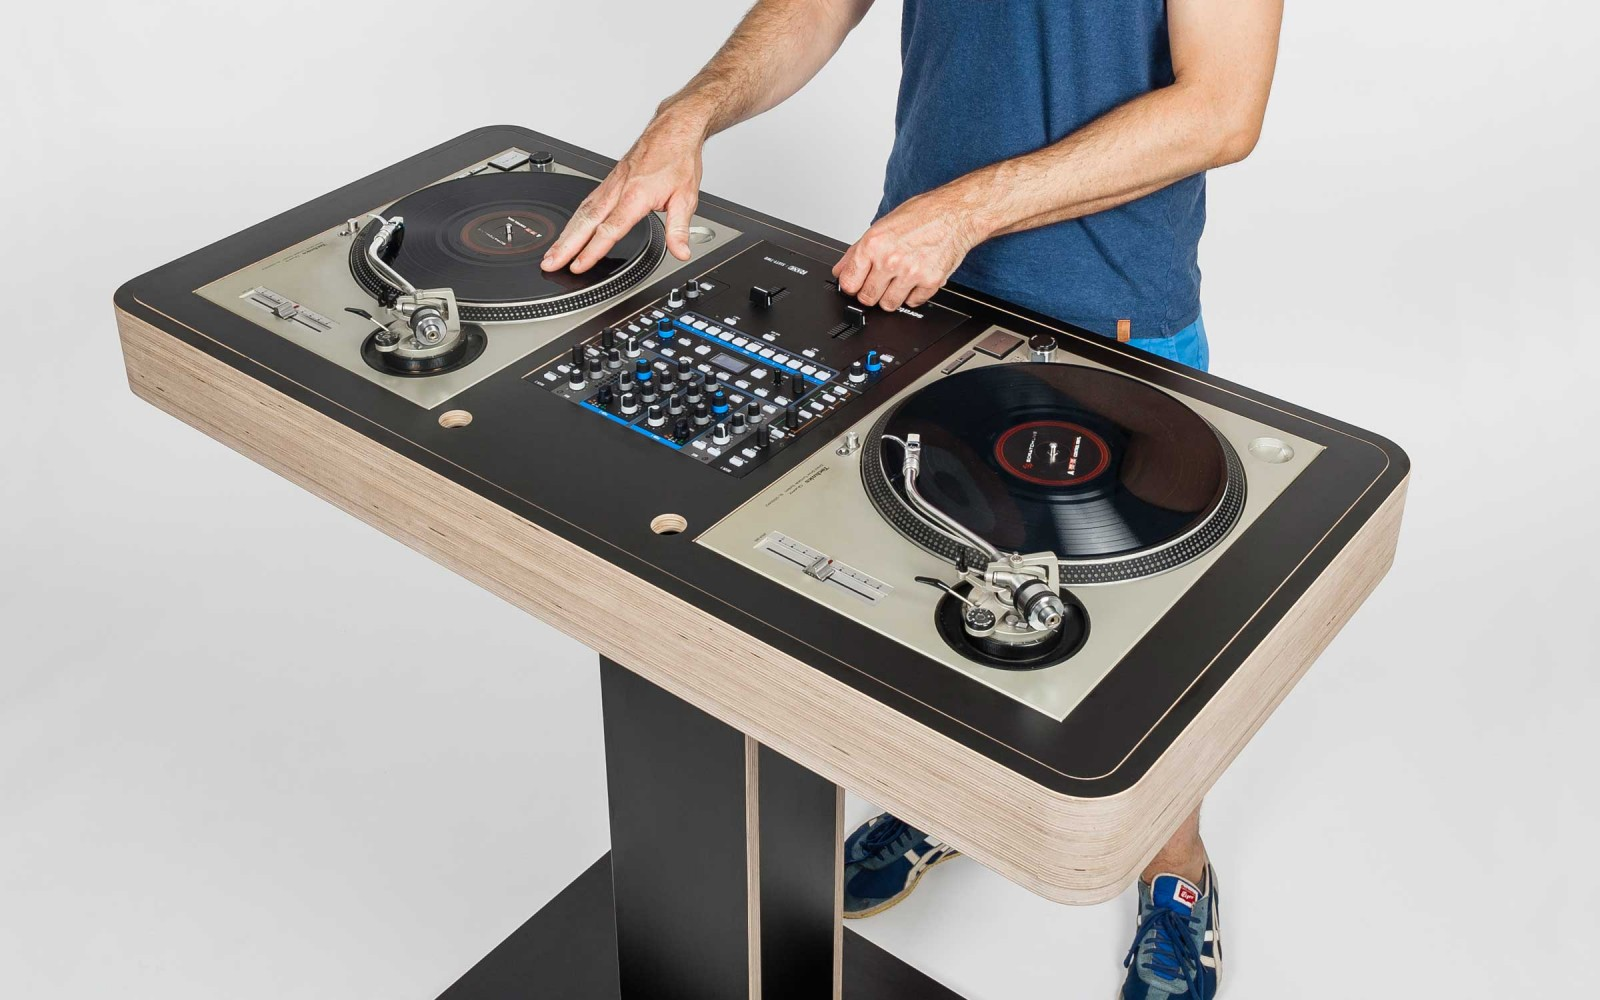 Mesa De Dj Online Hoerboard Pro Audio Dj Furniture The Customized Dj Table